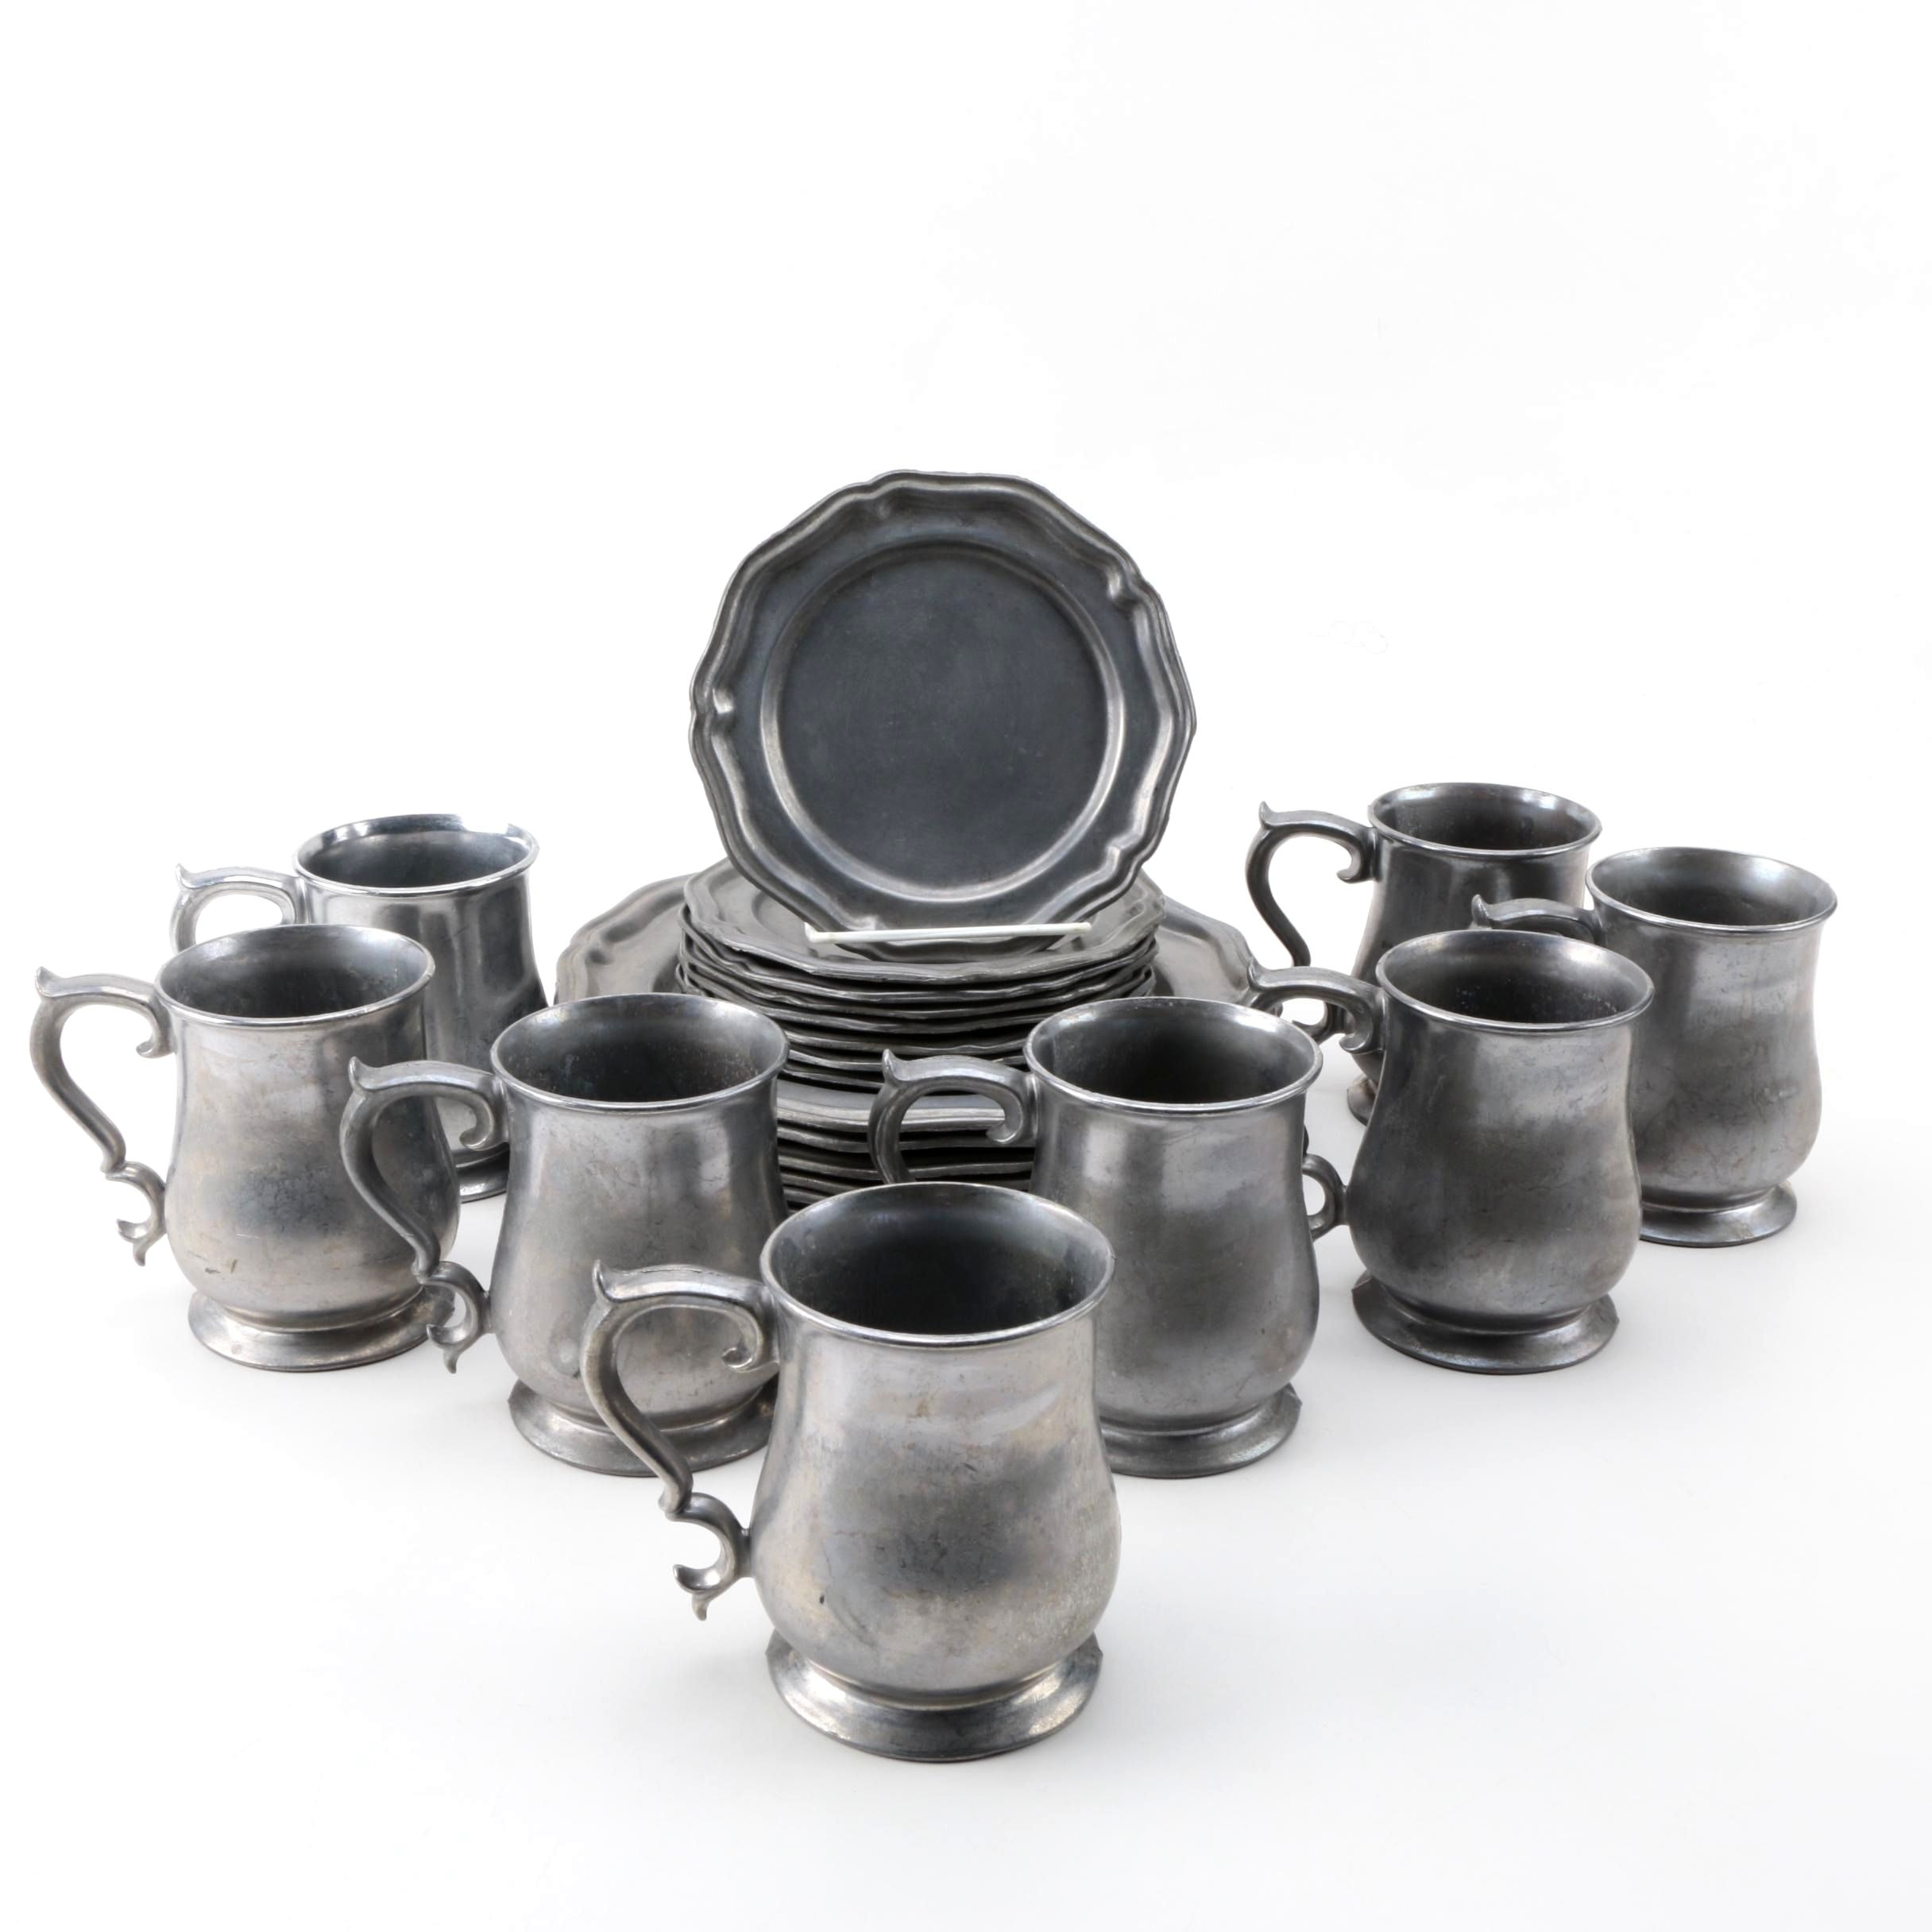 Crown - Castle Ltd. Pewter Tableware Set ...  sc 1 st  EBTH.com : pewter tableware - pezcame.com